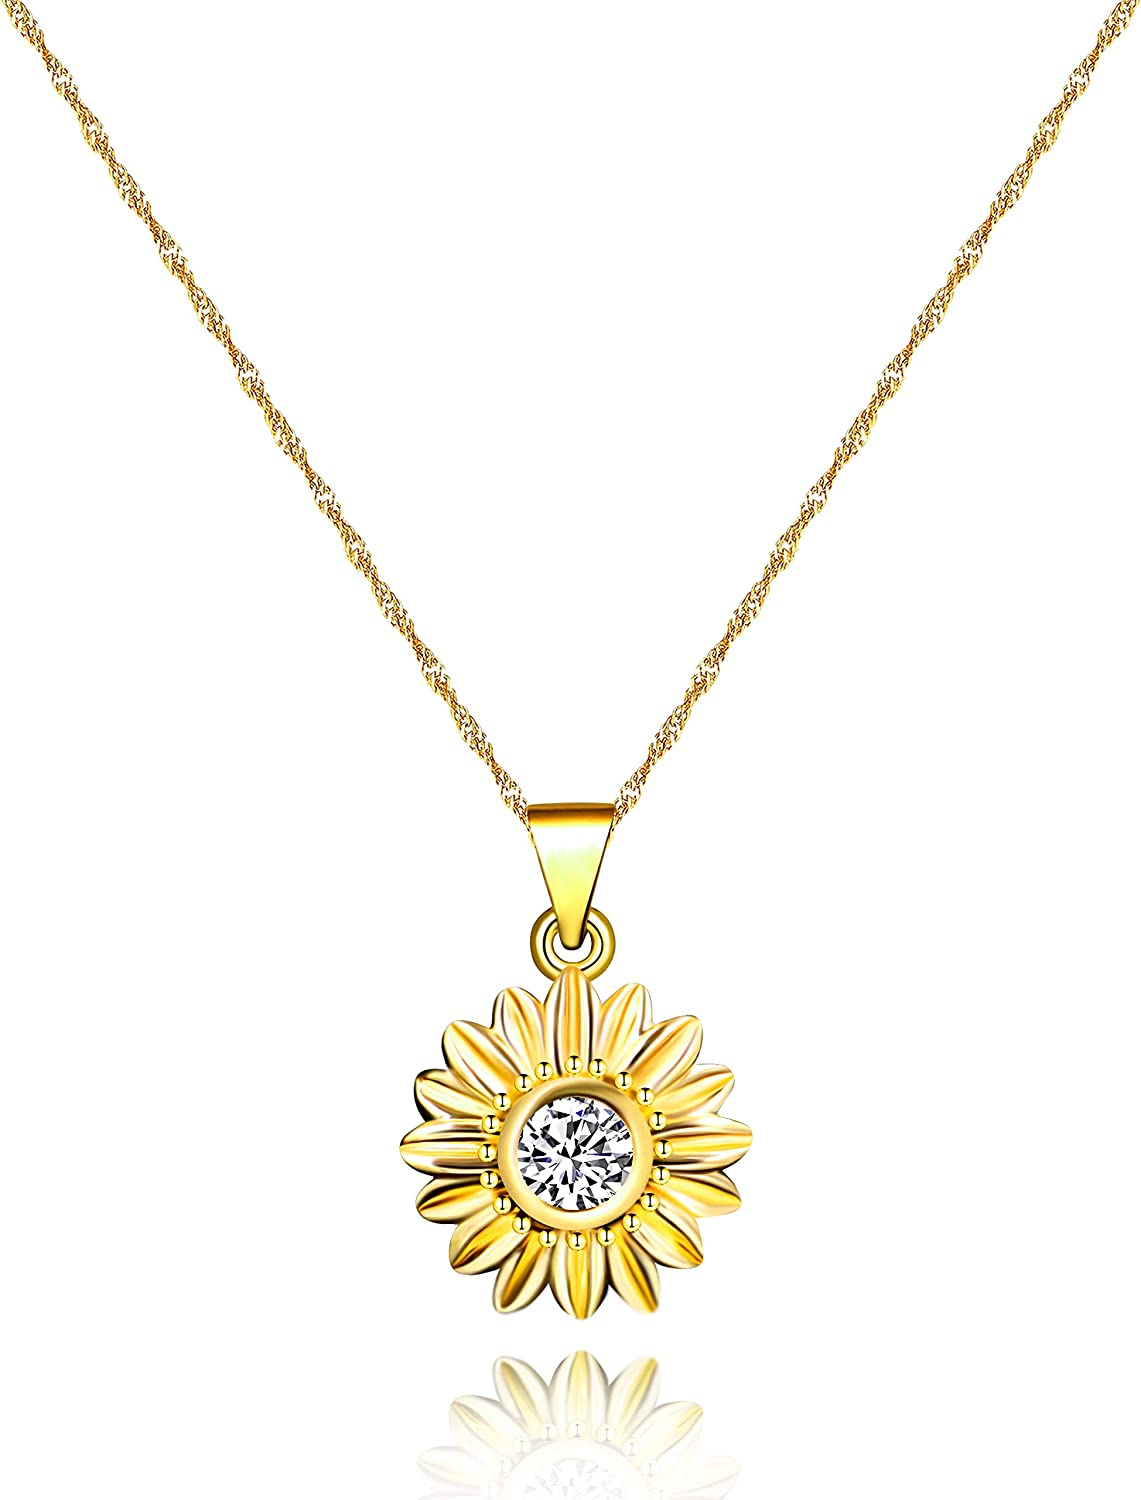 Dainty Daisy Flower Branded goods Ranking TOP17 Necklace Sun Zirconia Cubic Chrysanth